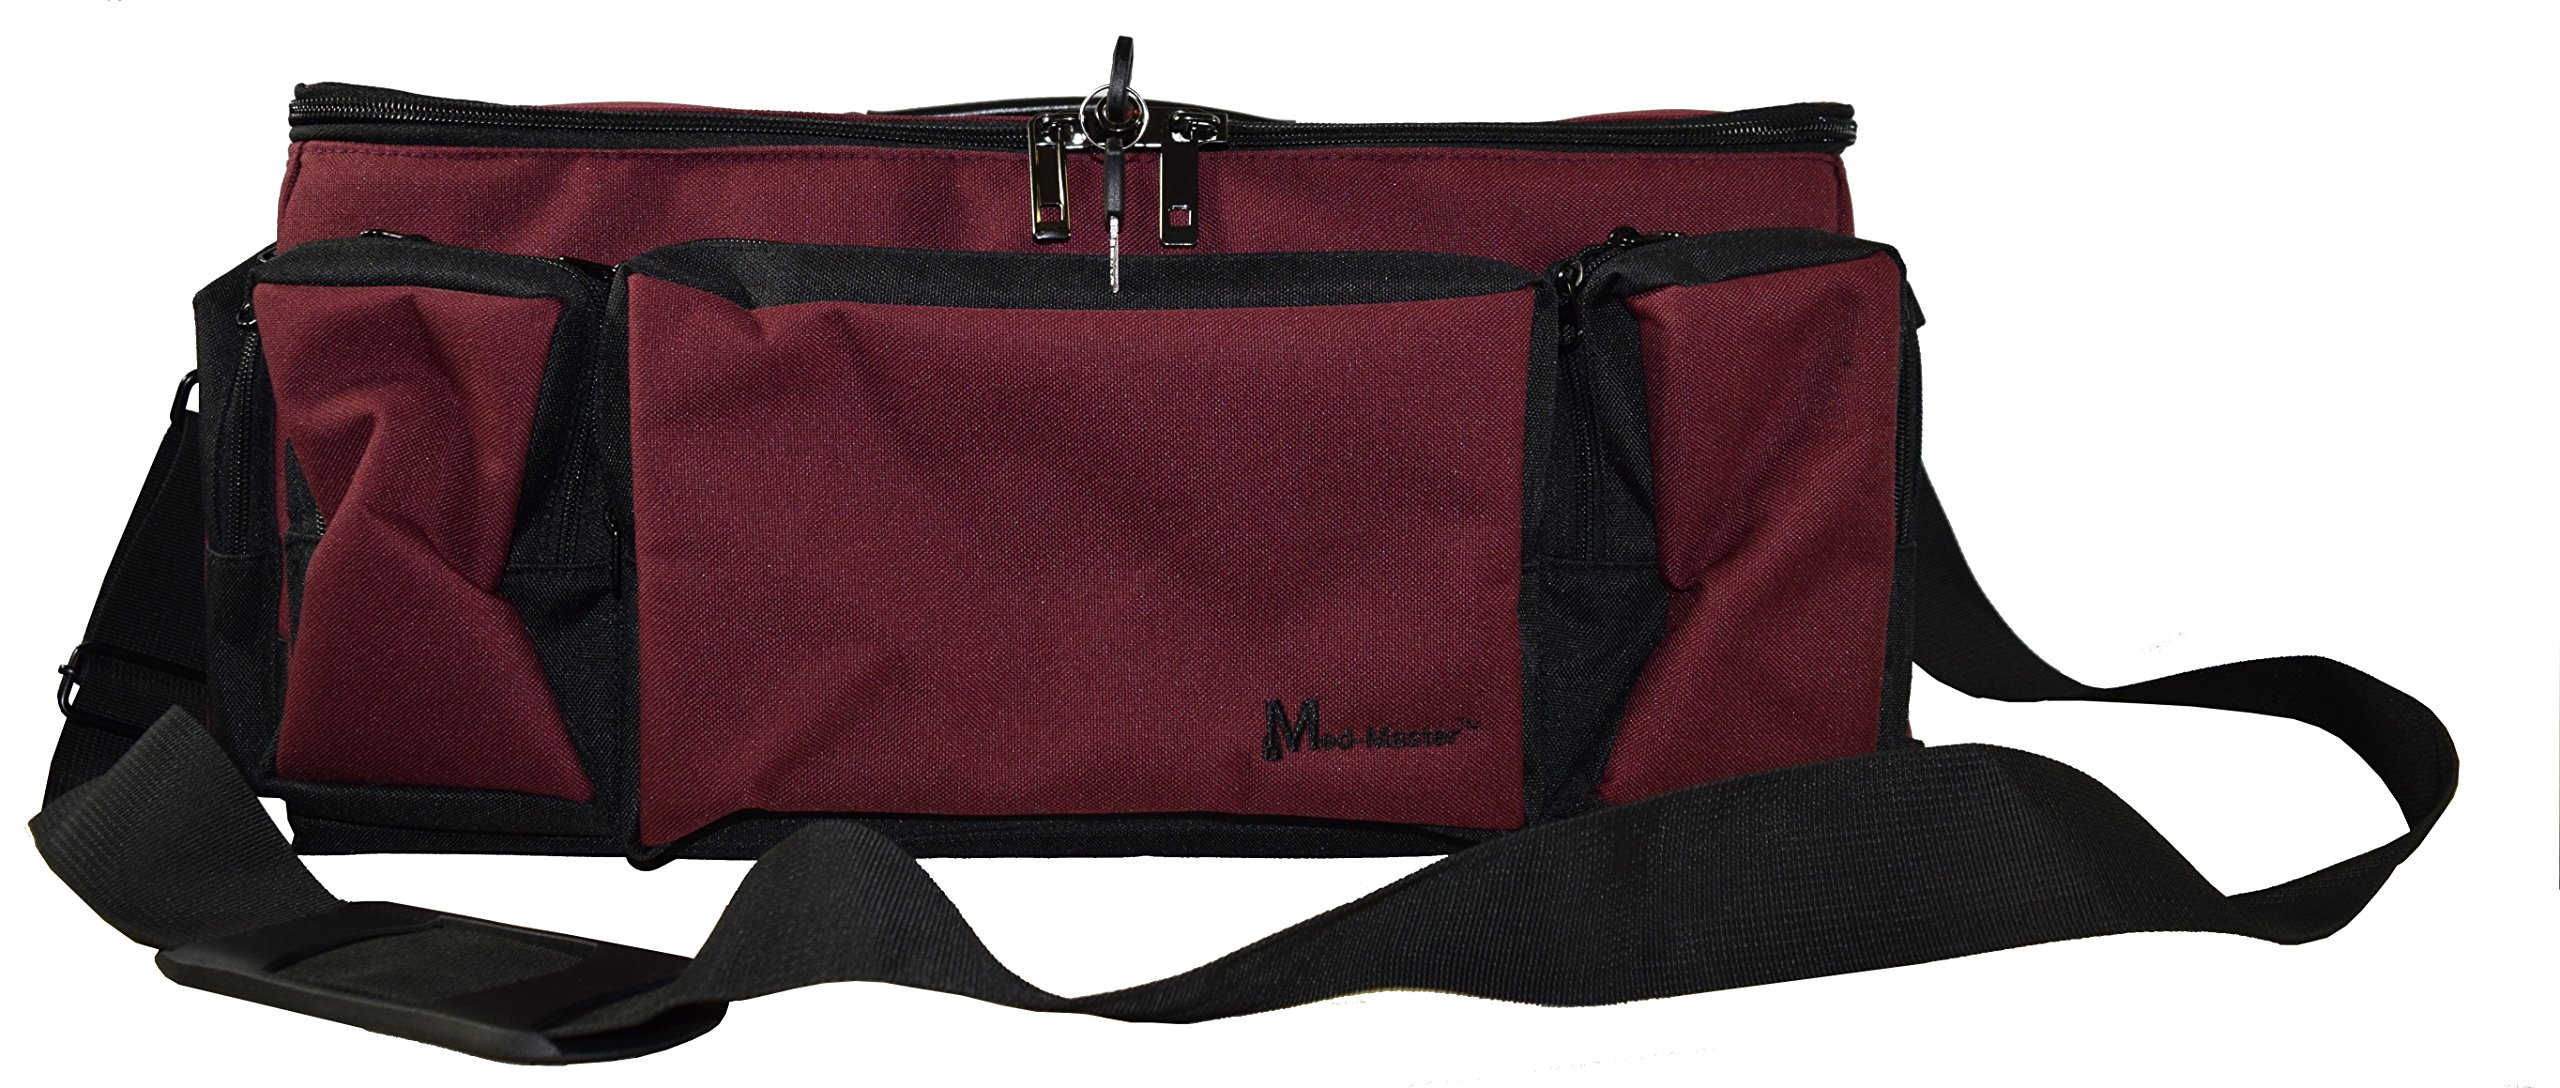 Med-Master Locking Medication Transport Bag, Burgundy (221800017)